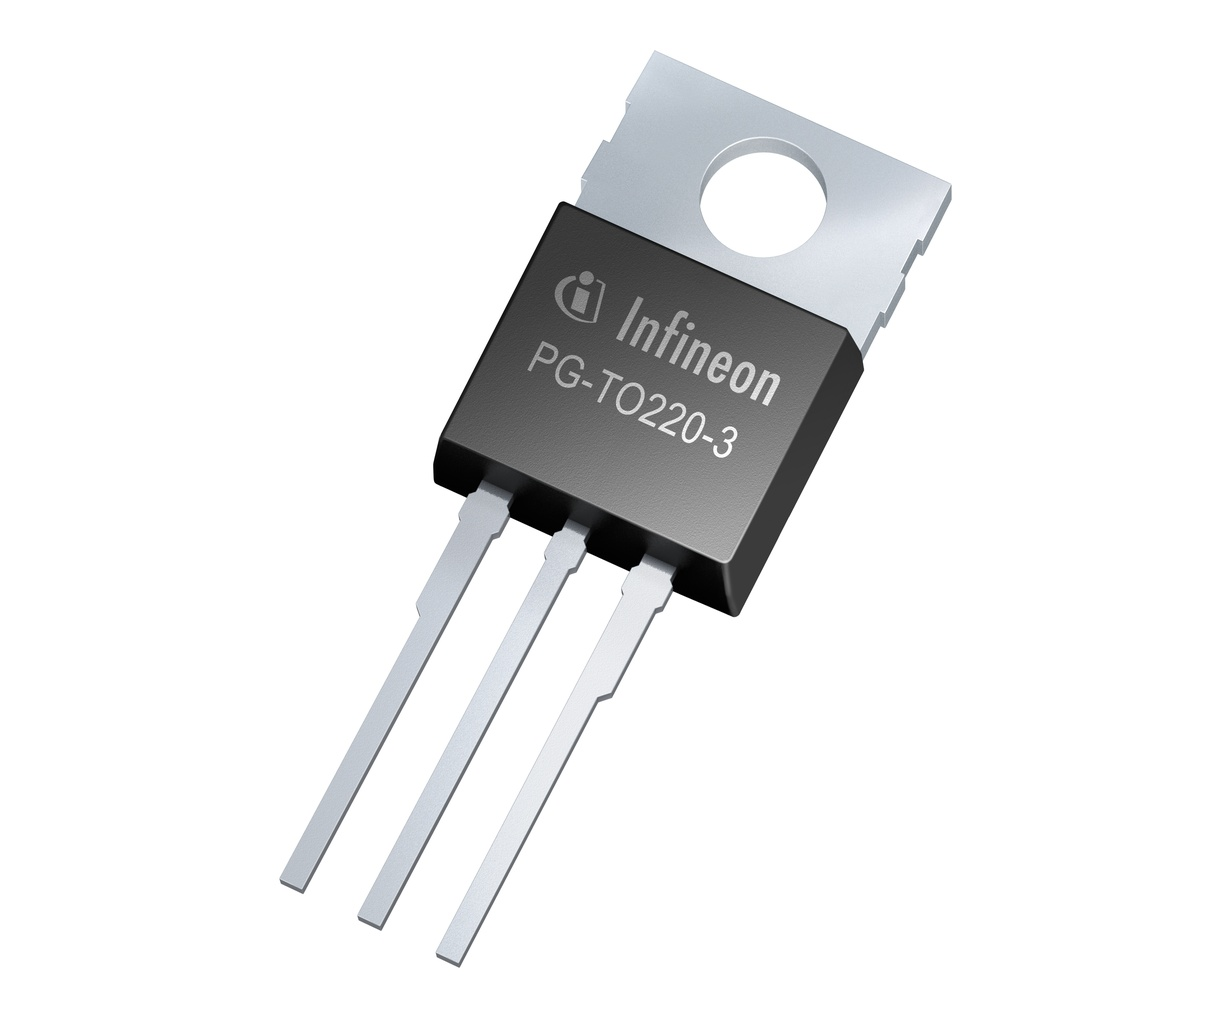 Its716g Infineon Technologies The N Type Mosfet Irf3205s Can Be Replaced With Different Types Of 80v 100v Channel Power Bts133